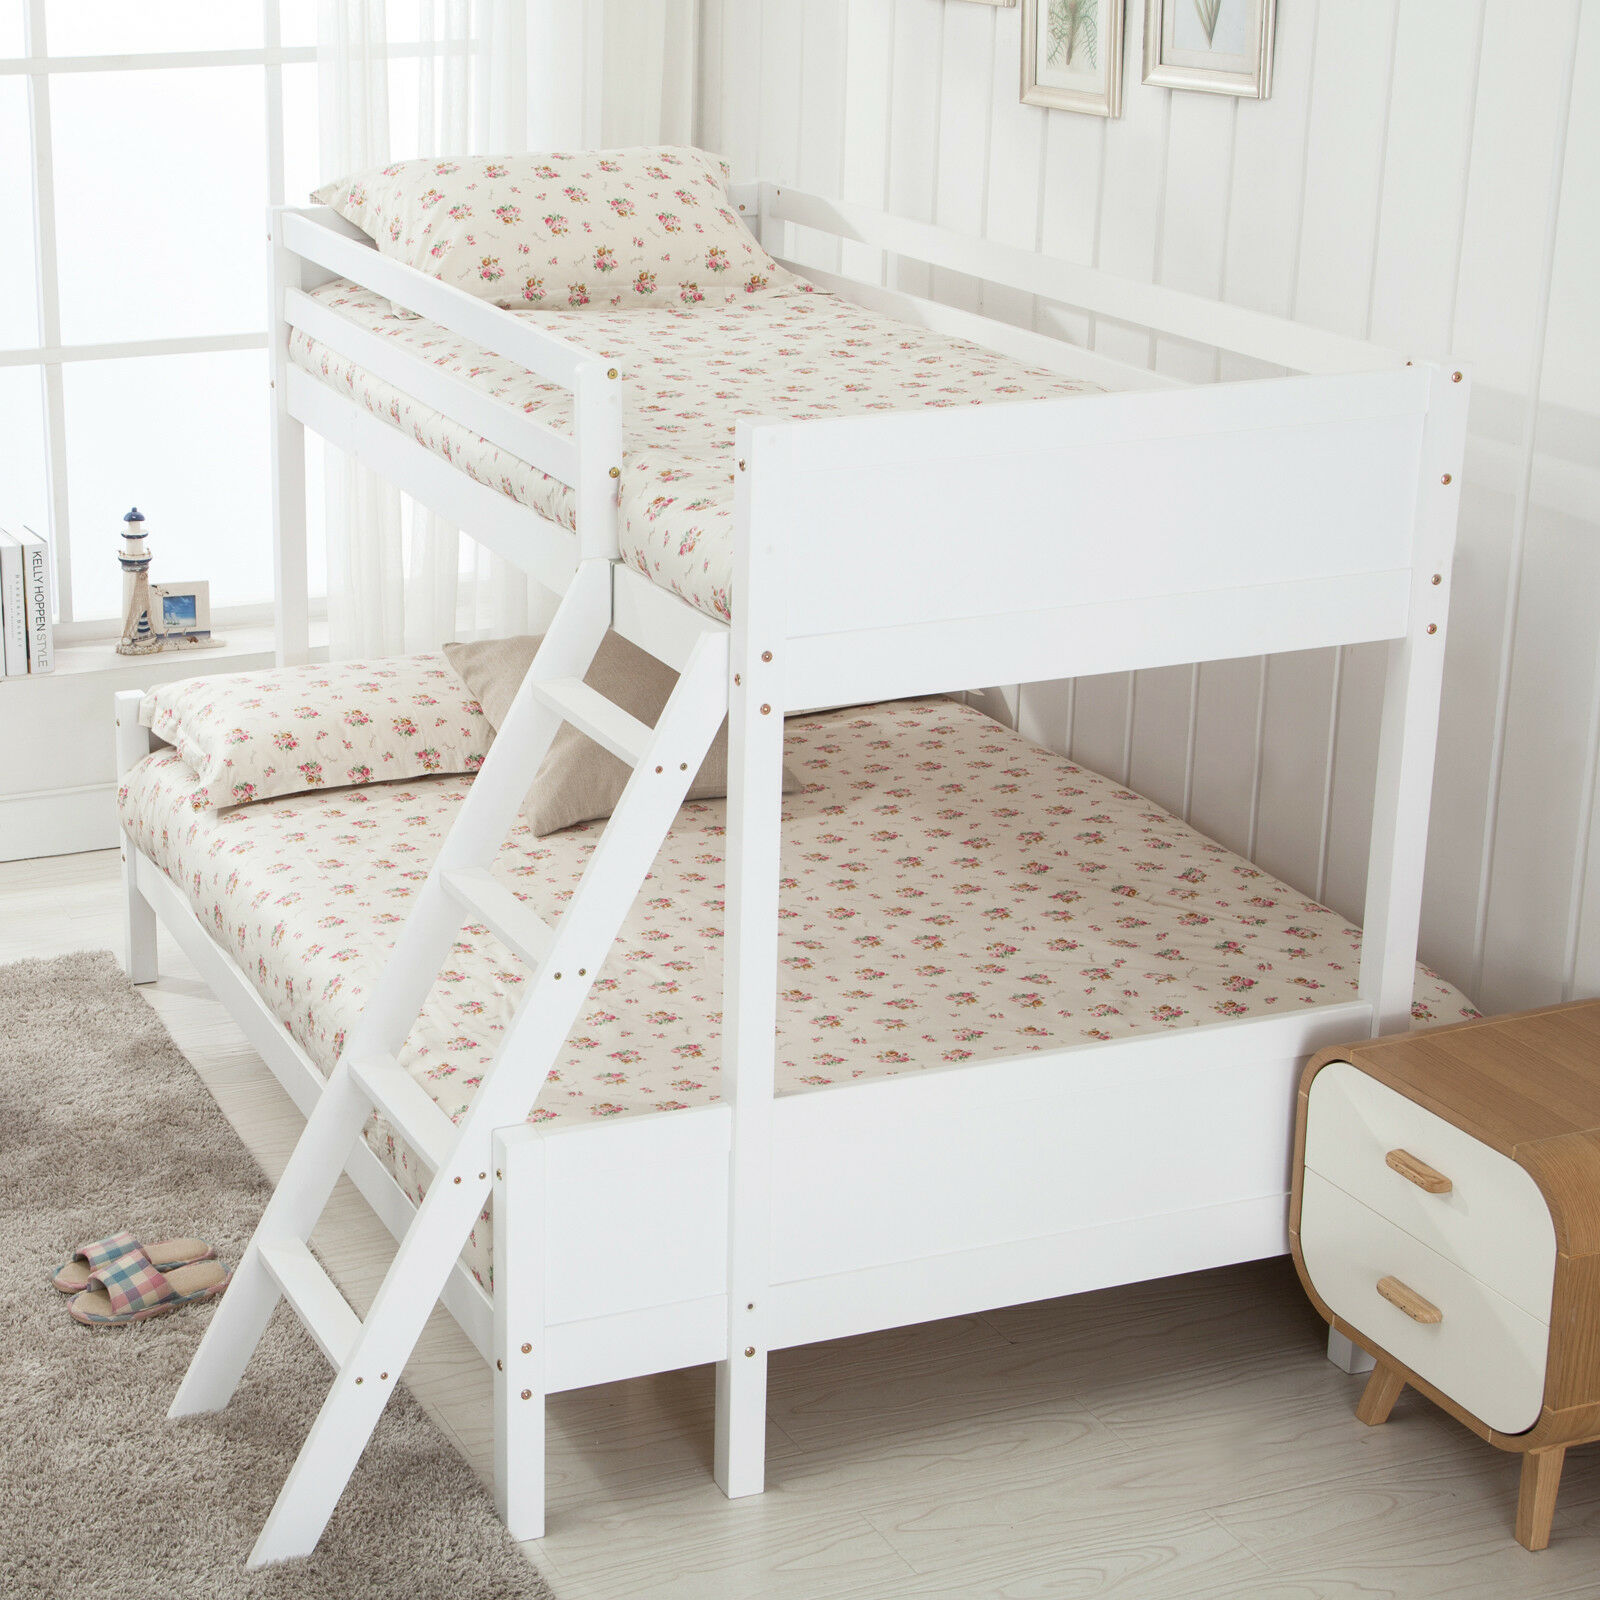 3ft Single 4ft Small Double White Pinewood Bunk Bed Frame For Kids